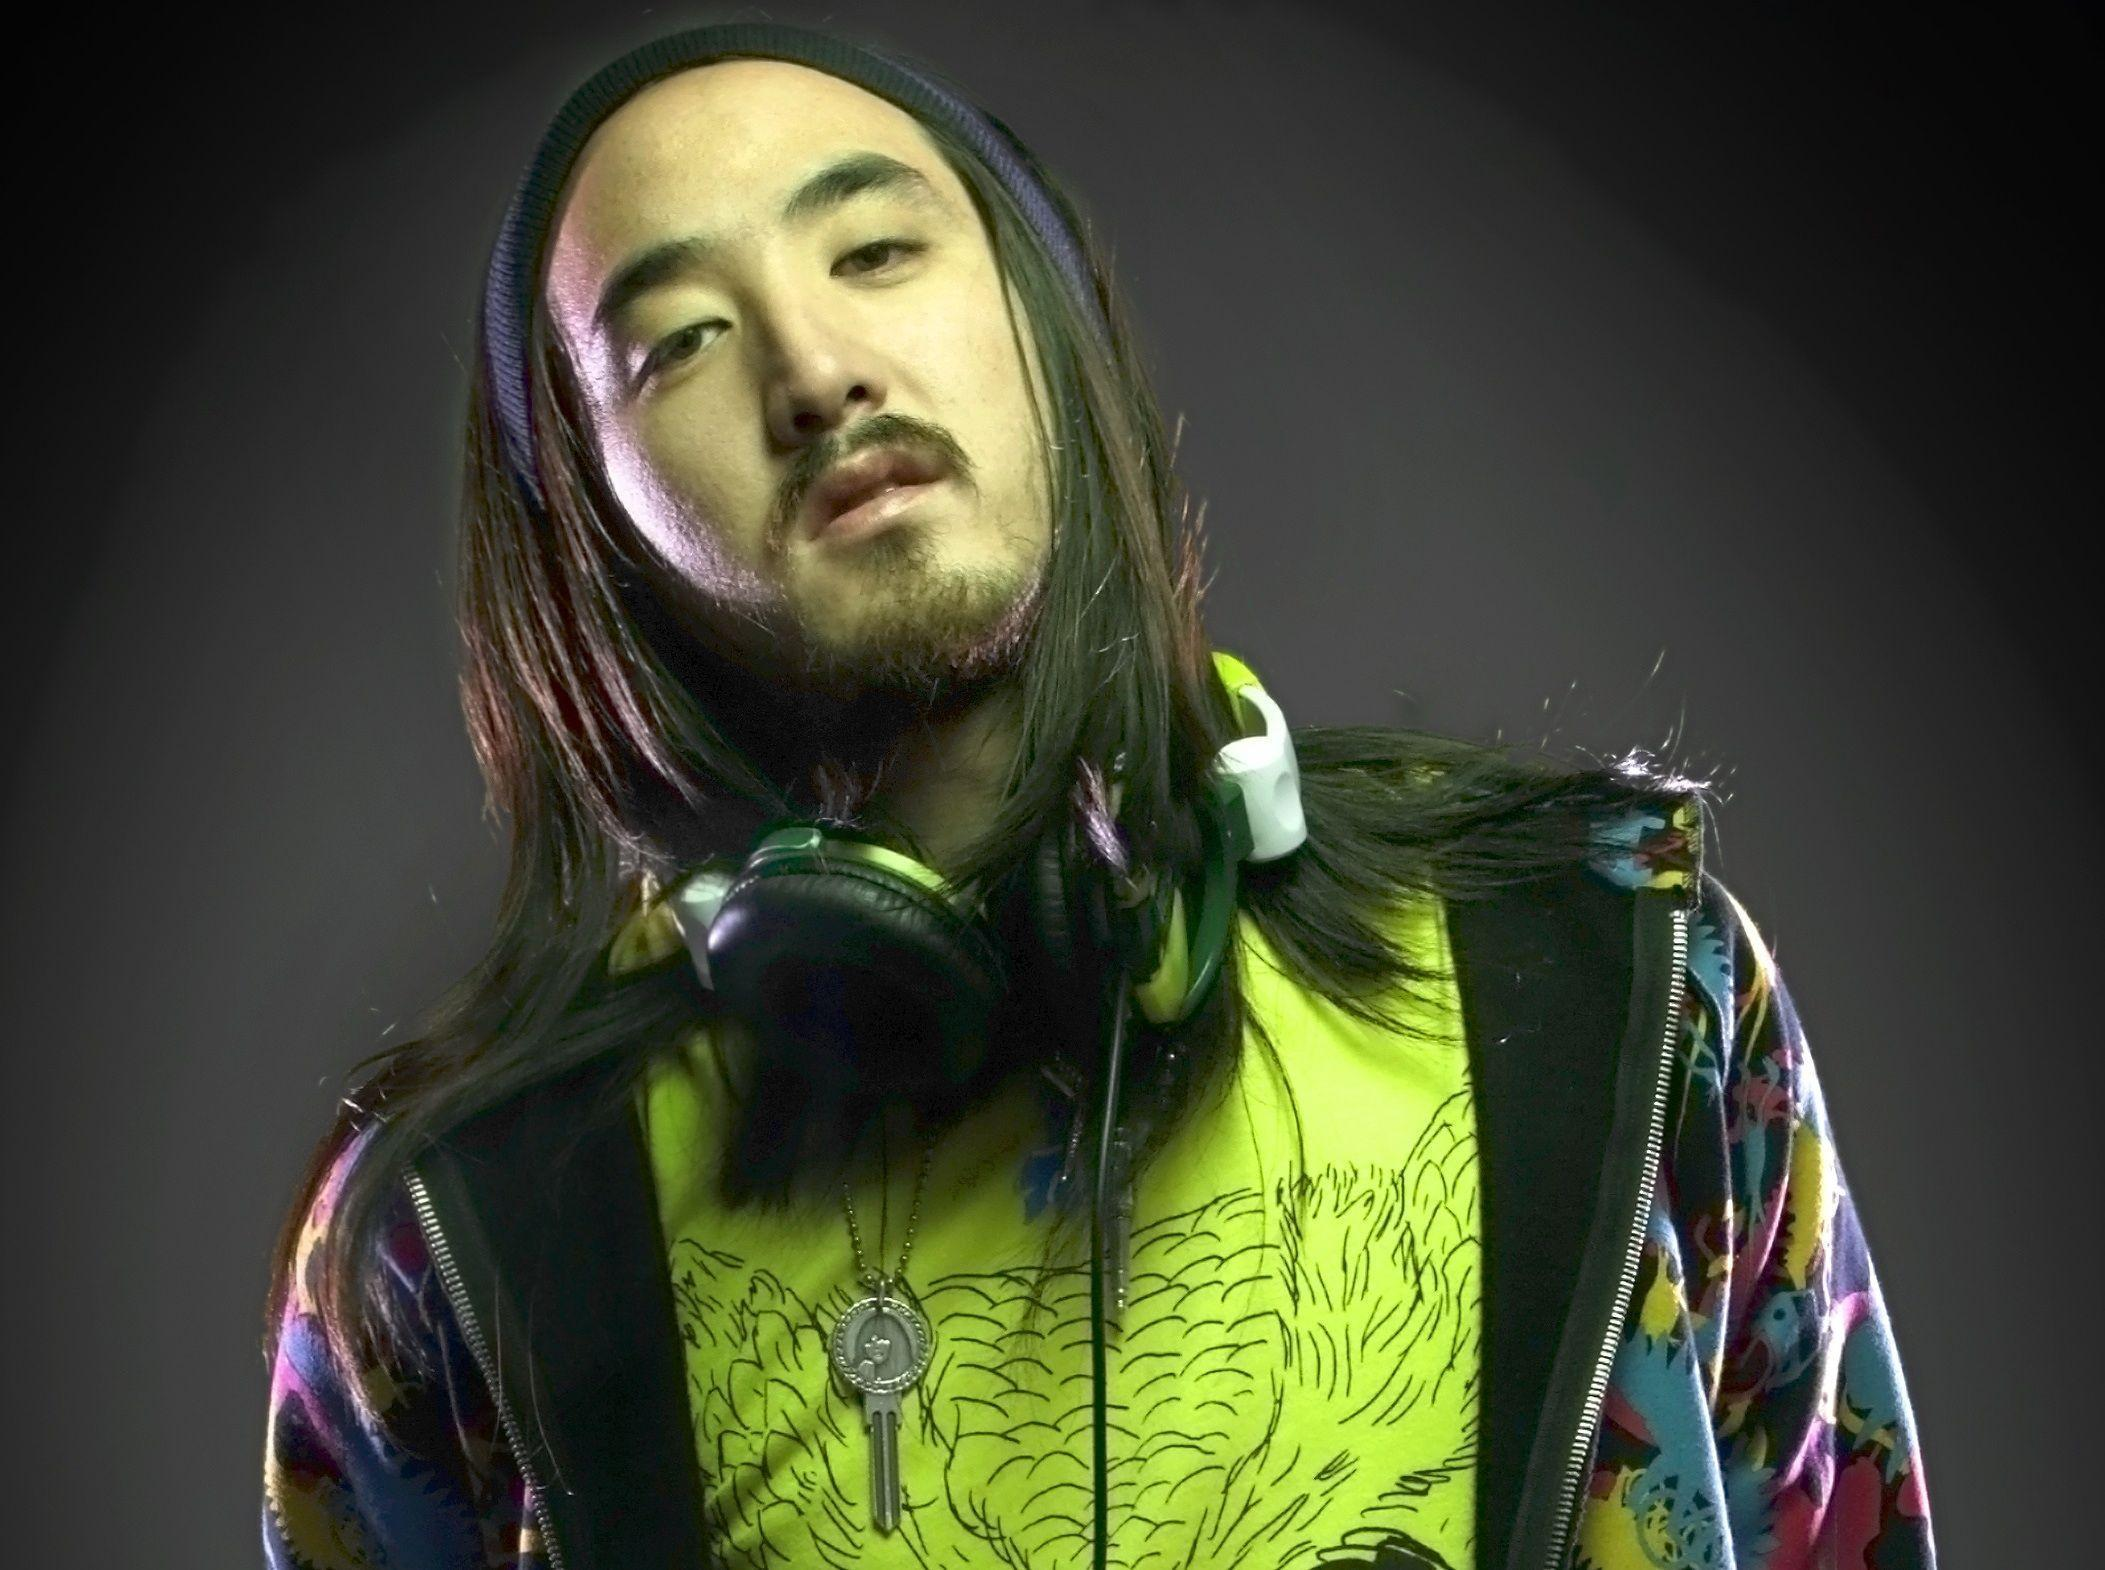 High Quality Steve Aoki Wallpaper | Full HD Pictures